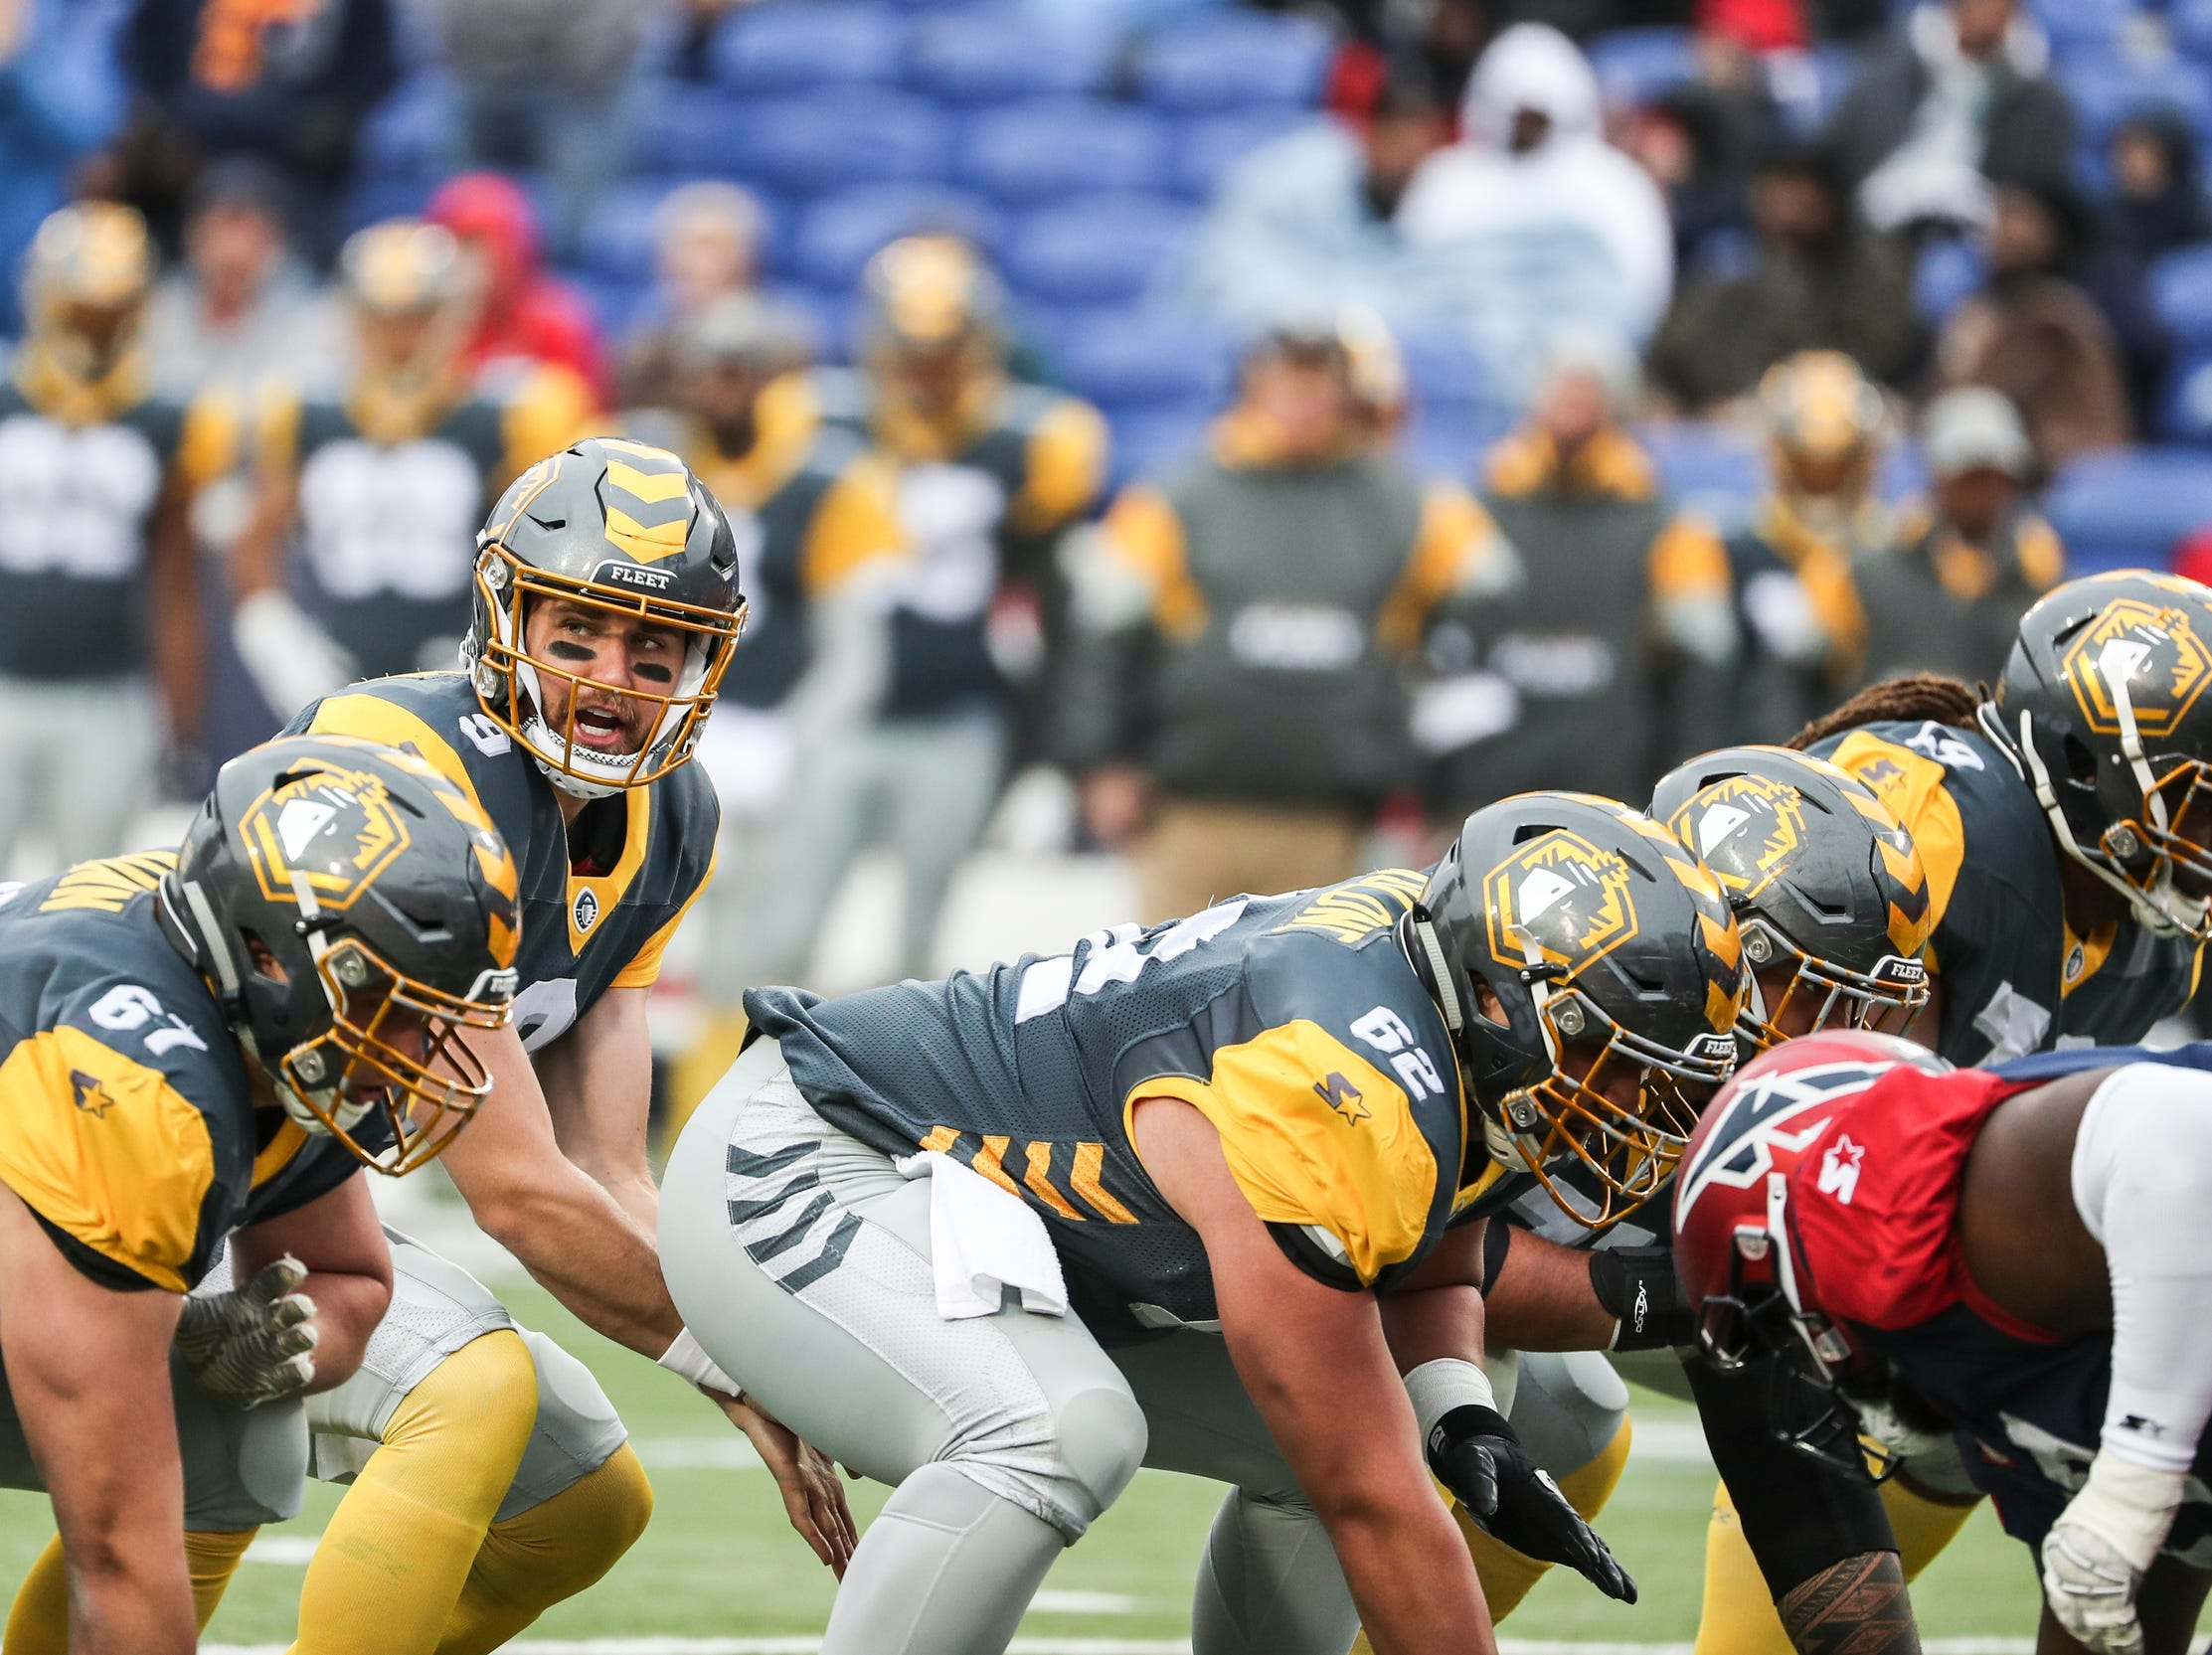 March 02, 2019 - San Diego's quarterback Philip Nelson during Saturday's game against the San Diego Fleet.